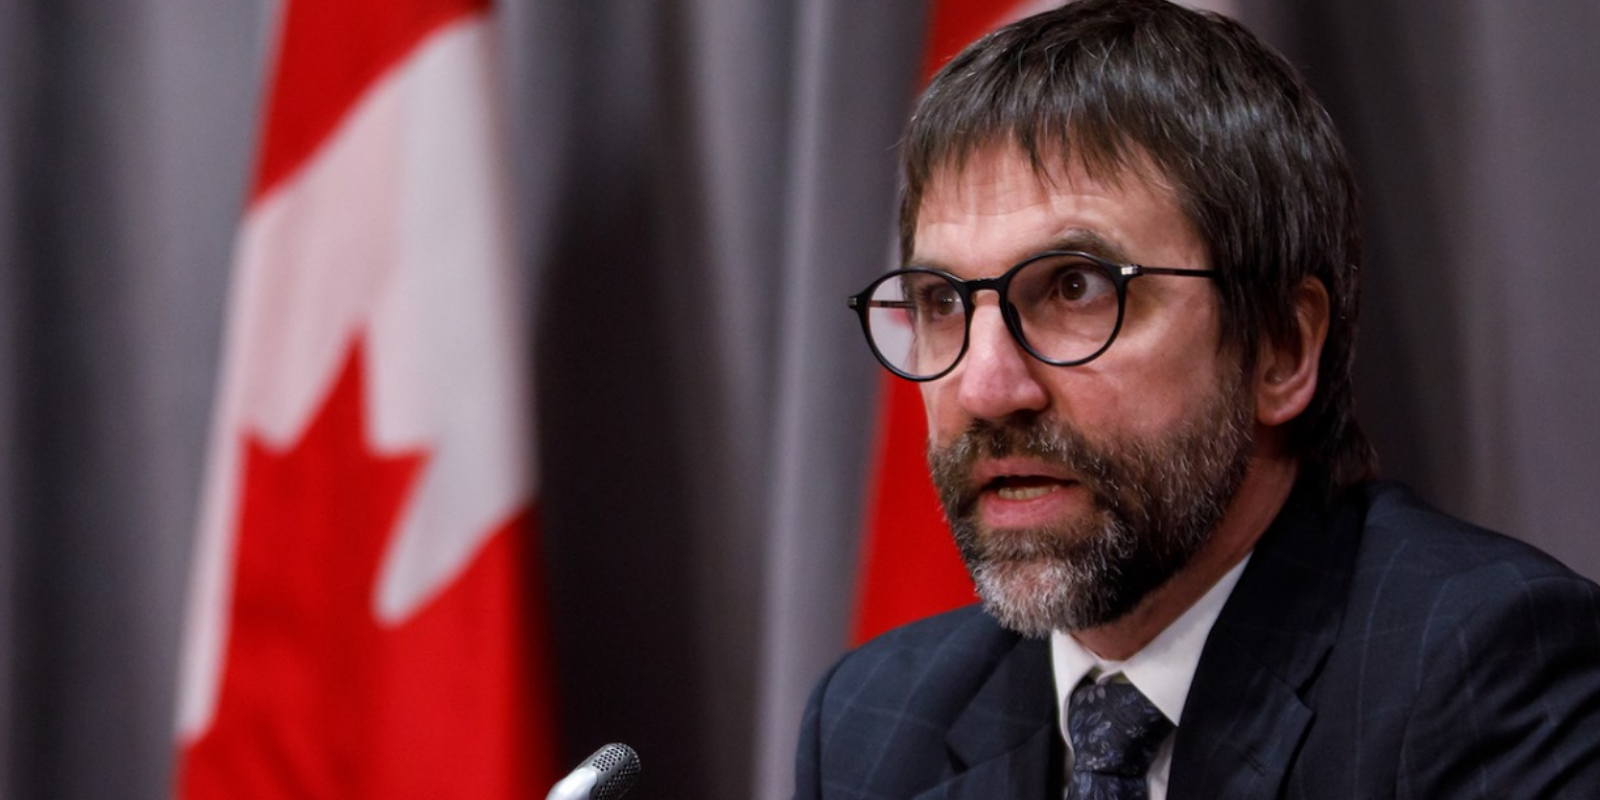 Poll finds 58 percent of Canadians oppose online censorship, contradicting heritage minister's claim